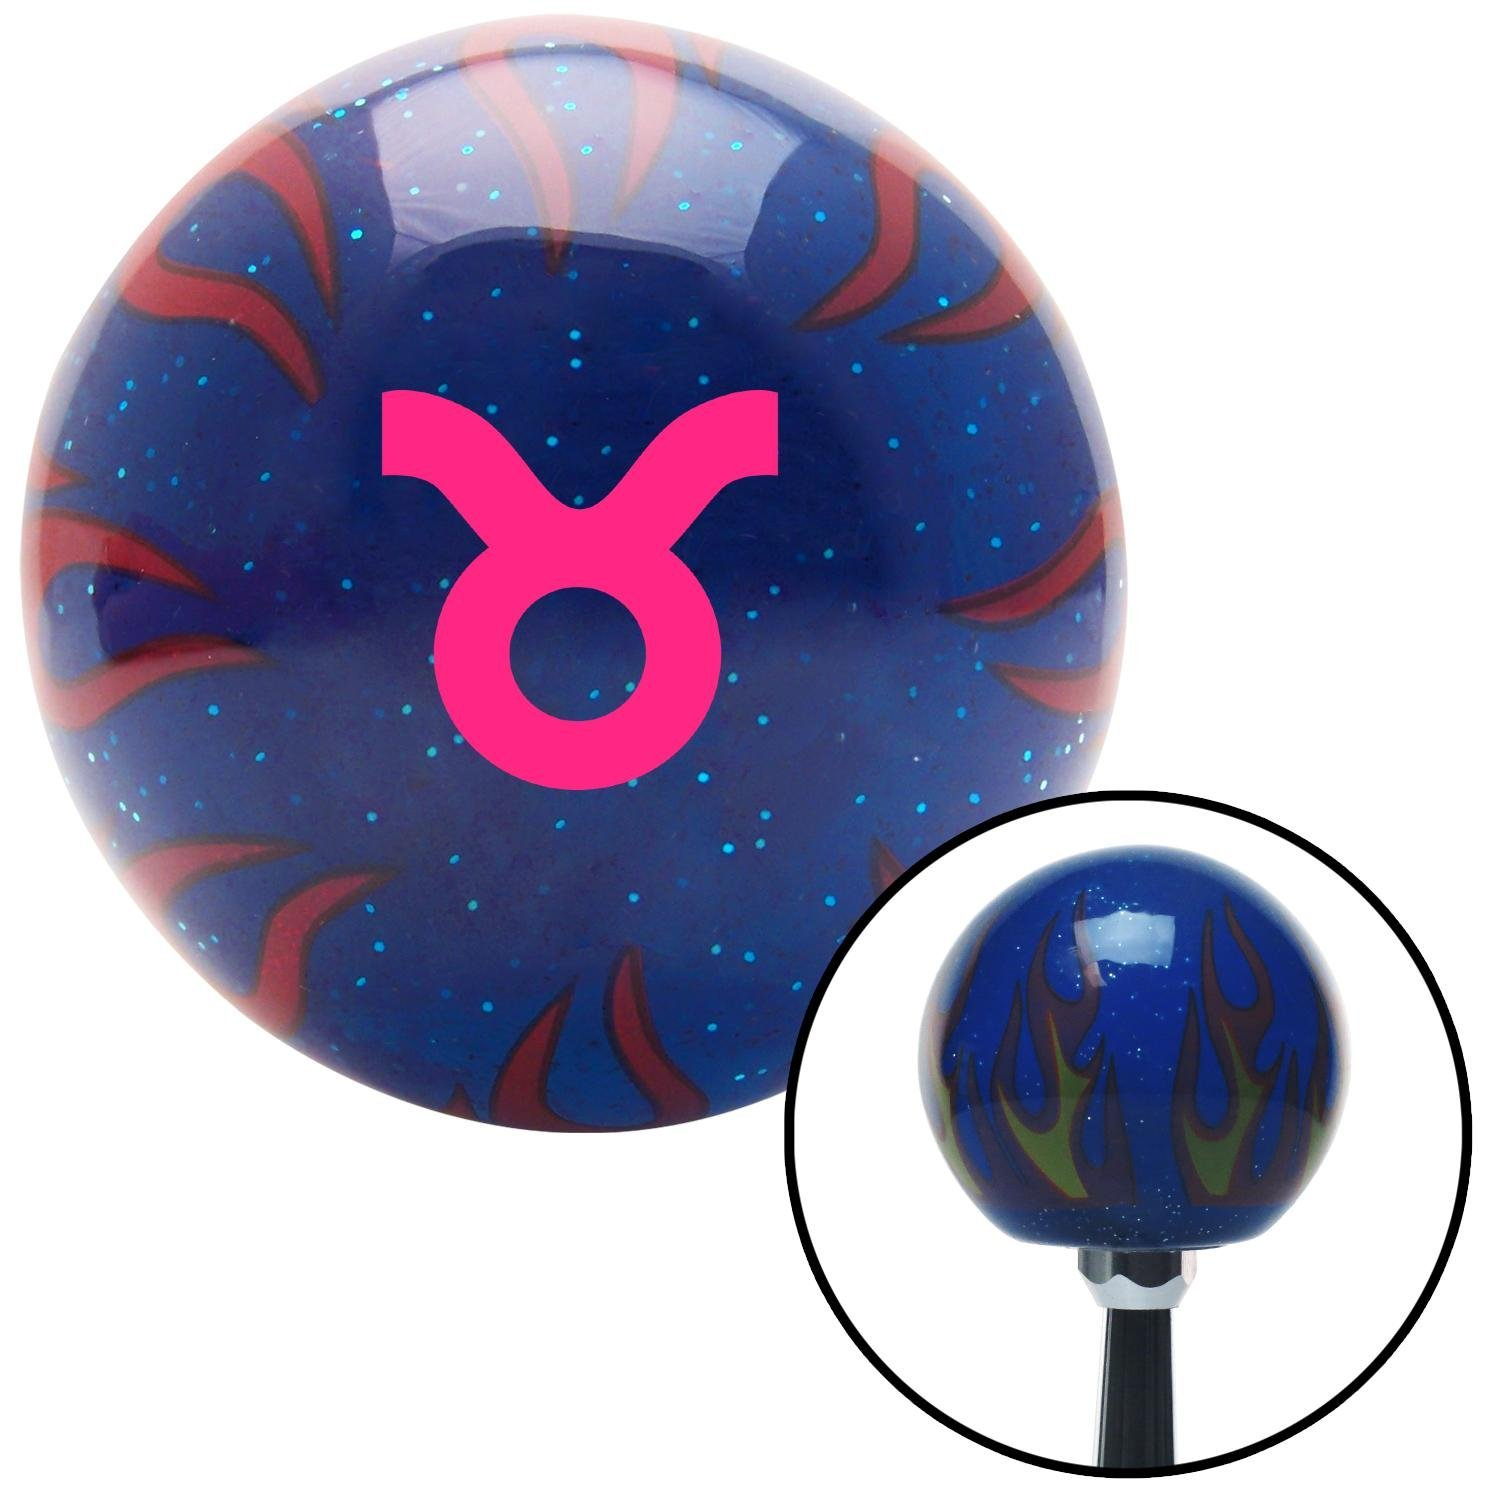 American Shifter 298037 Shift Knob Pink Taurus Blue Flame Metal Flake with M16 x 1.5 Insert